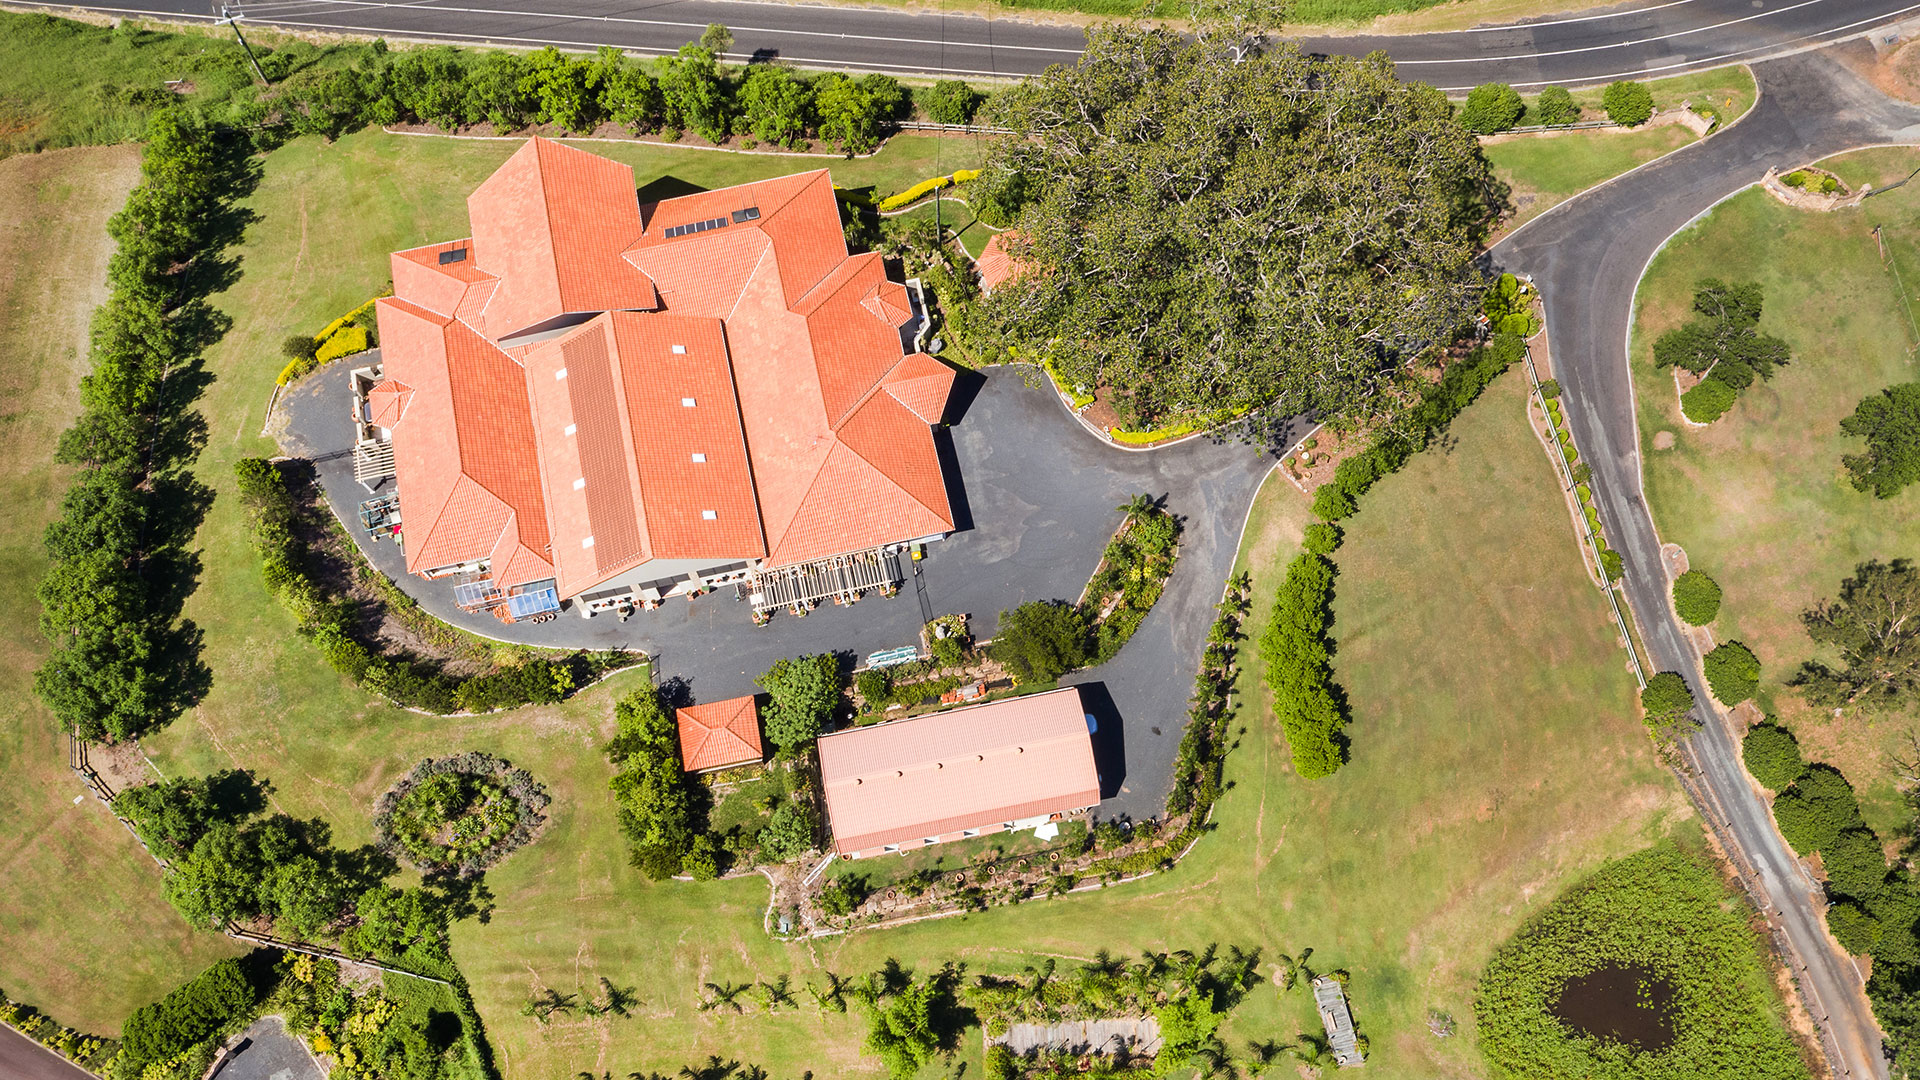 Aerial drone photography for real estate sales marketing.